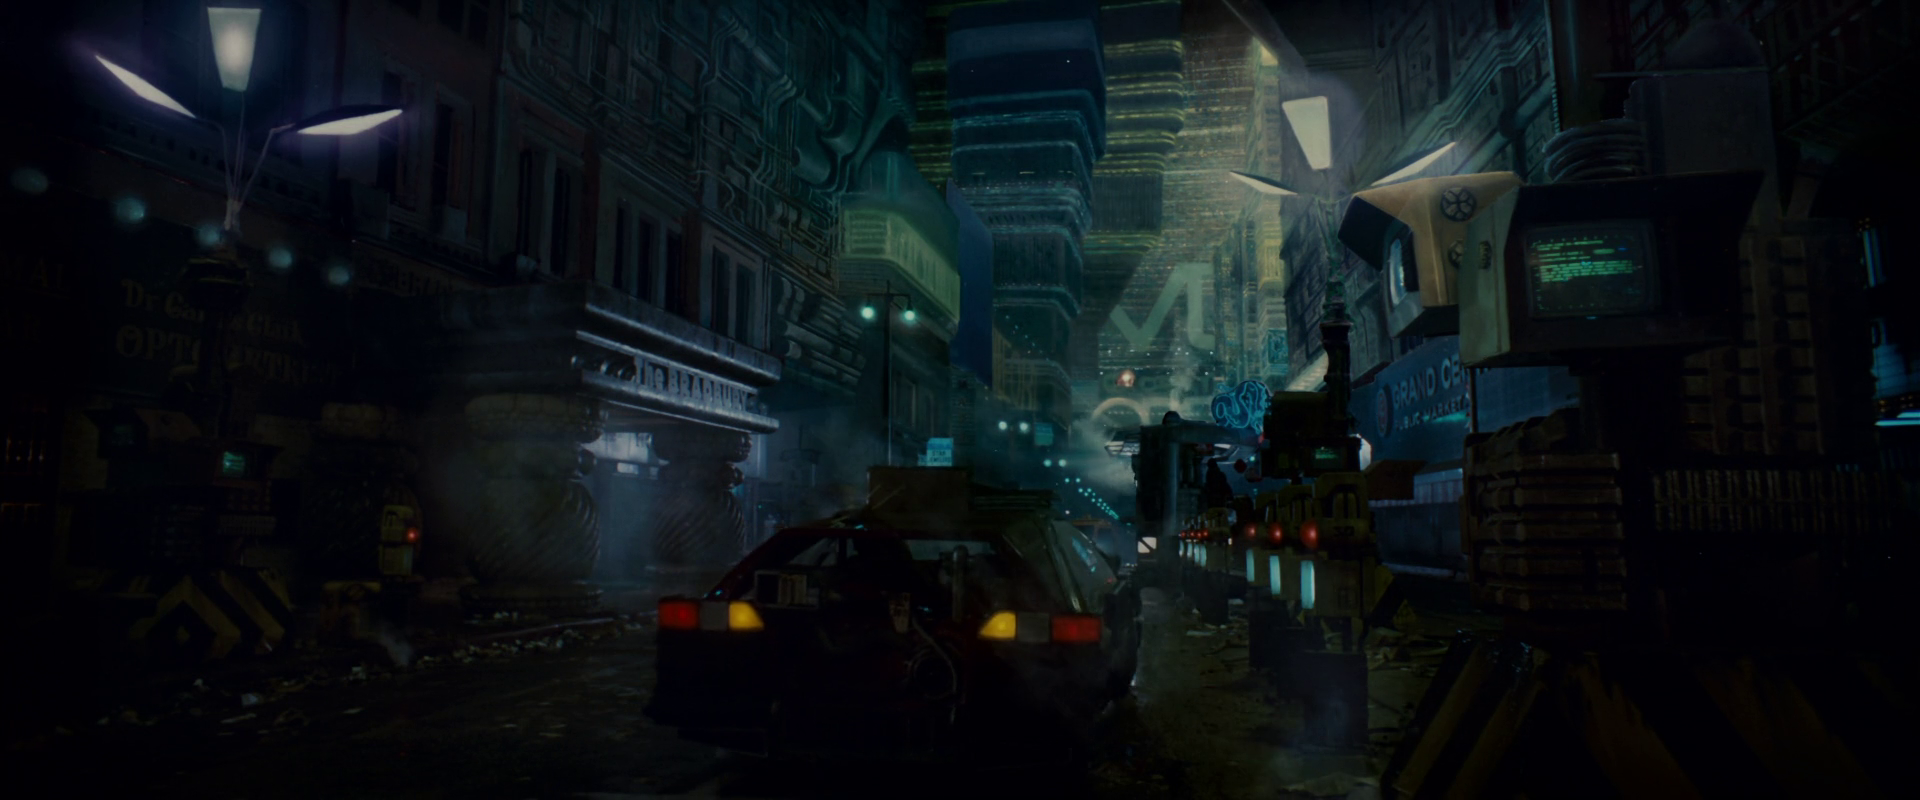 blade runner film analysis essay Film studies for free just watched the above, very new, film analytical video essays, spotted on one of its regular trawls of the great video hosting site vimeo they are made for educational and critical purposes, using fair use/fair dealing procedures, by the irish filmmaker, broadcaster, and lecturer steven.